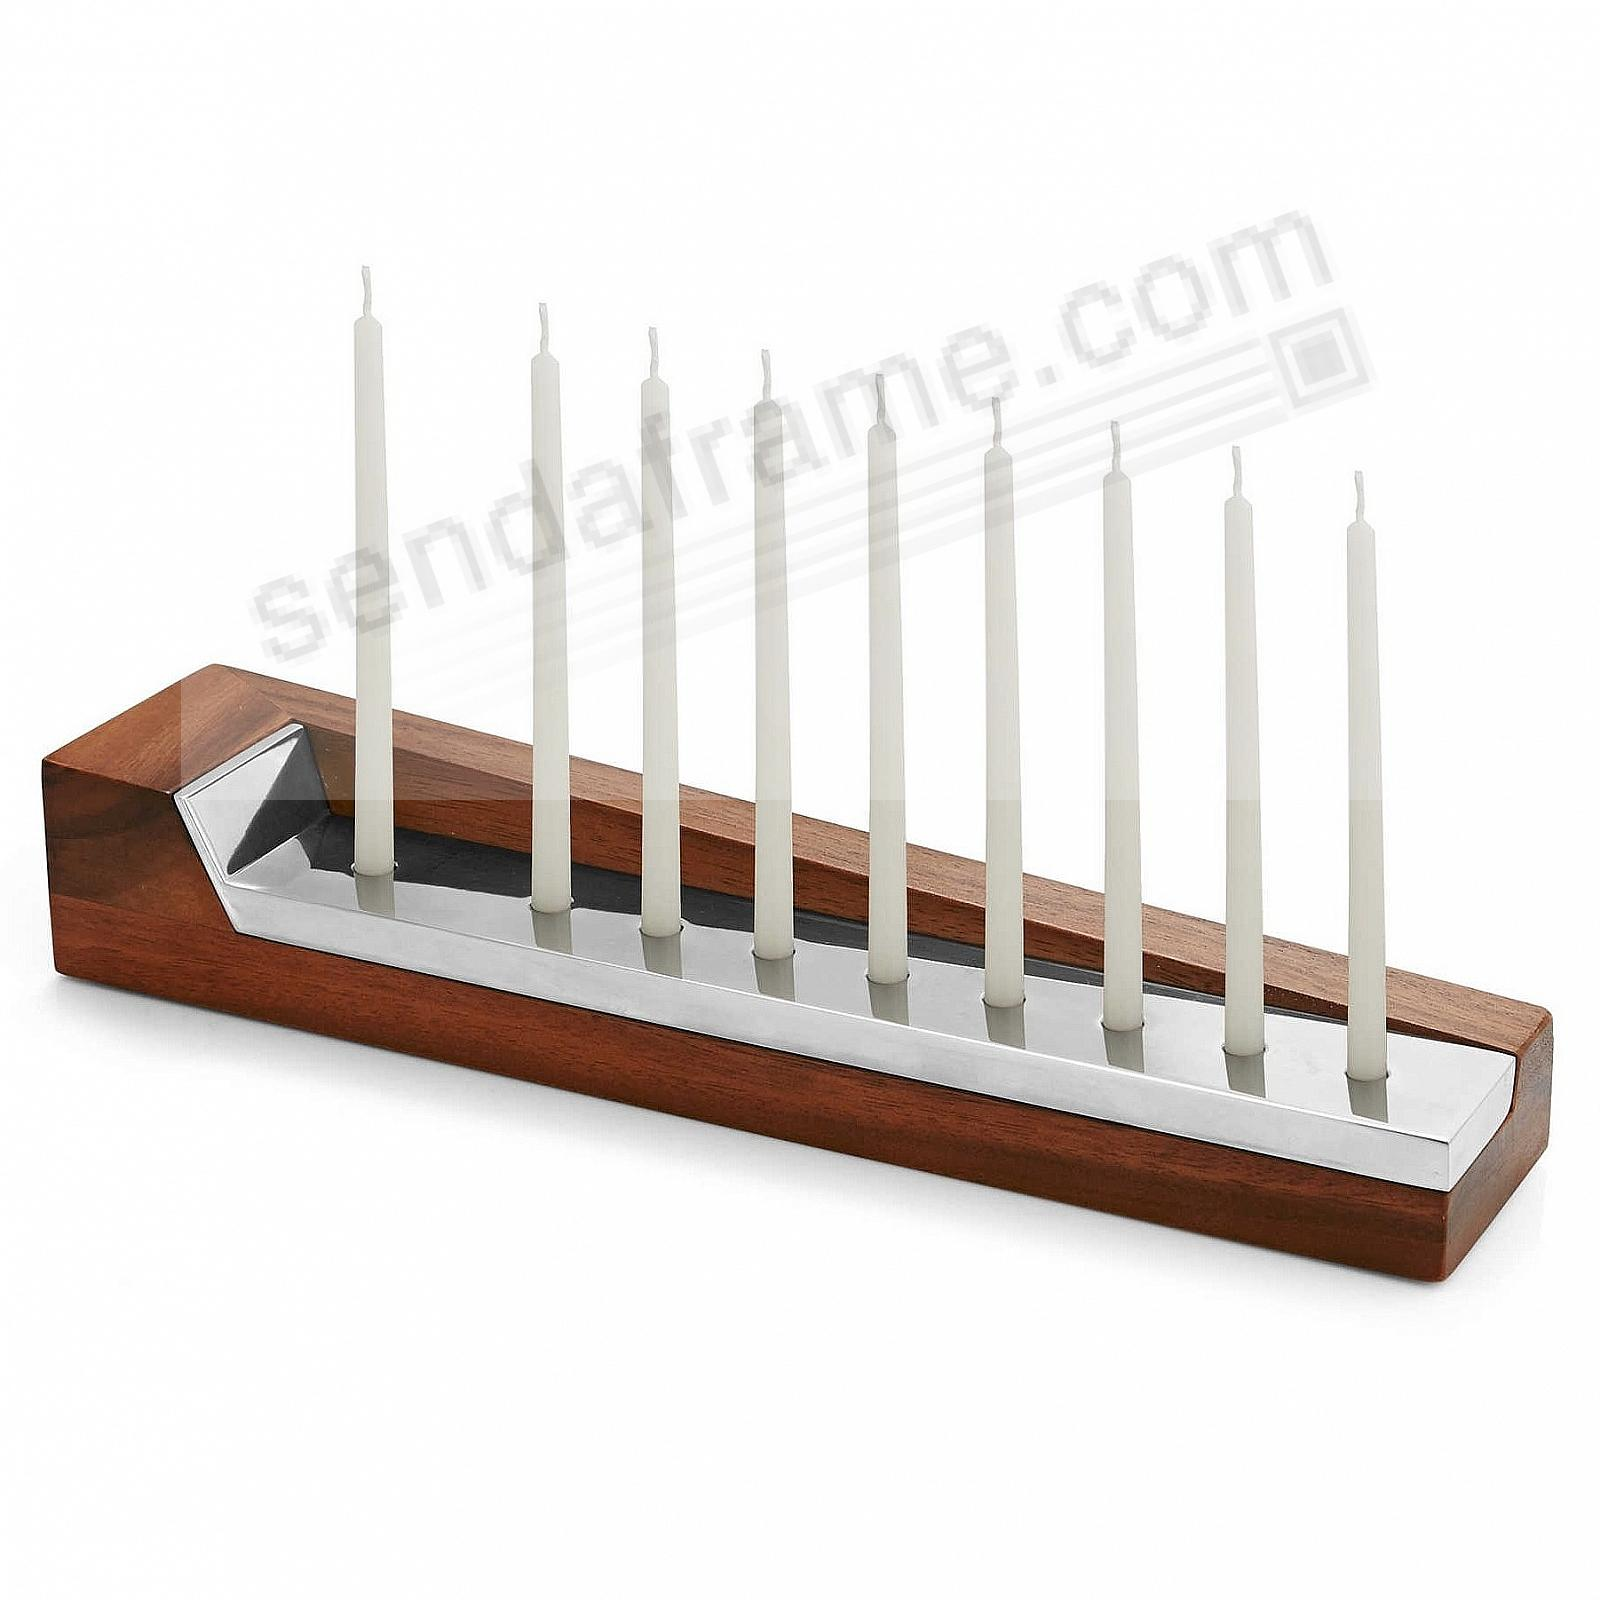 THE GEO MENORAH crafted by Nambe®